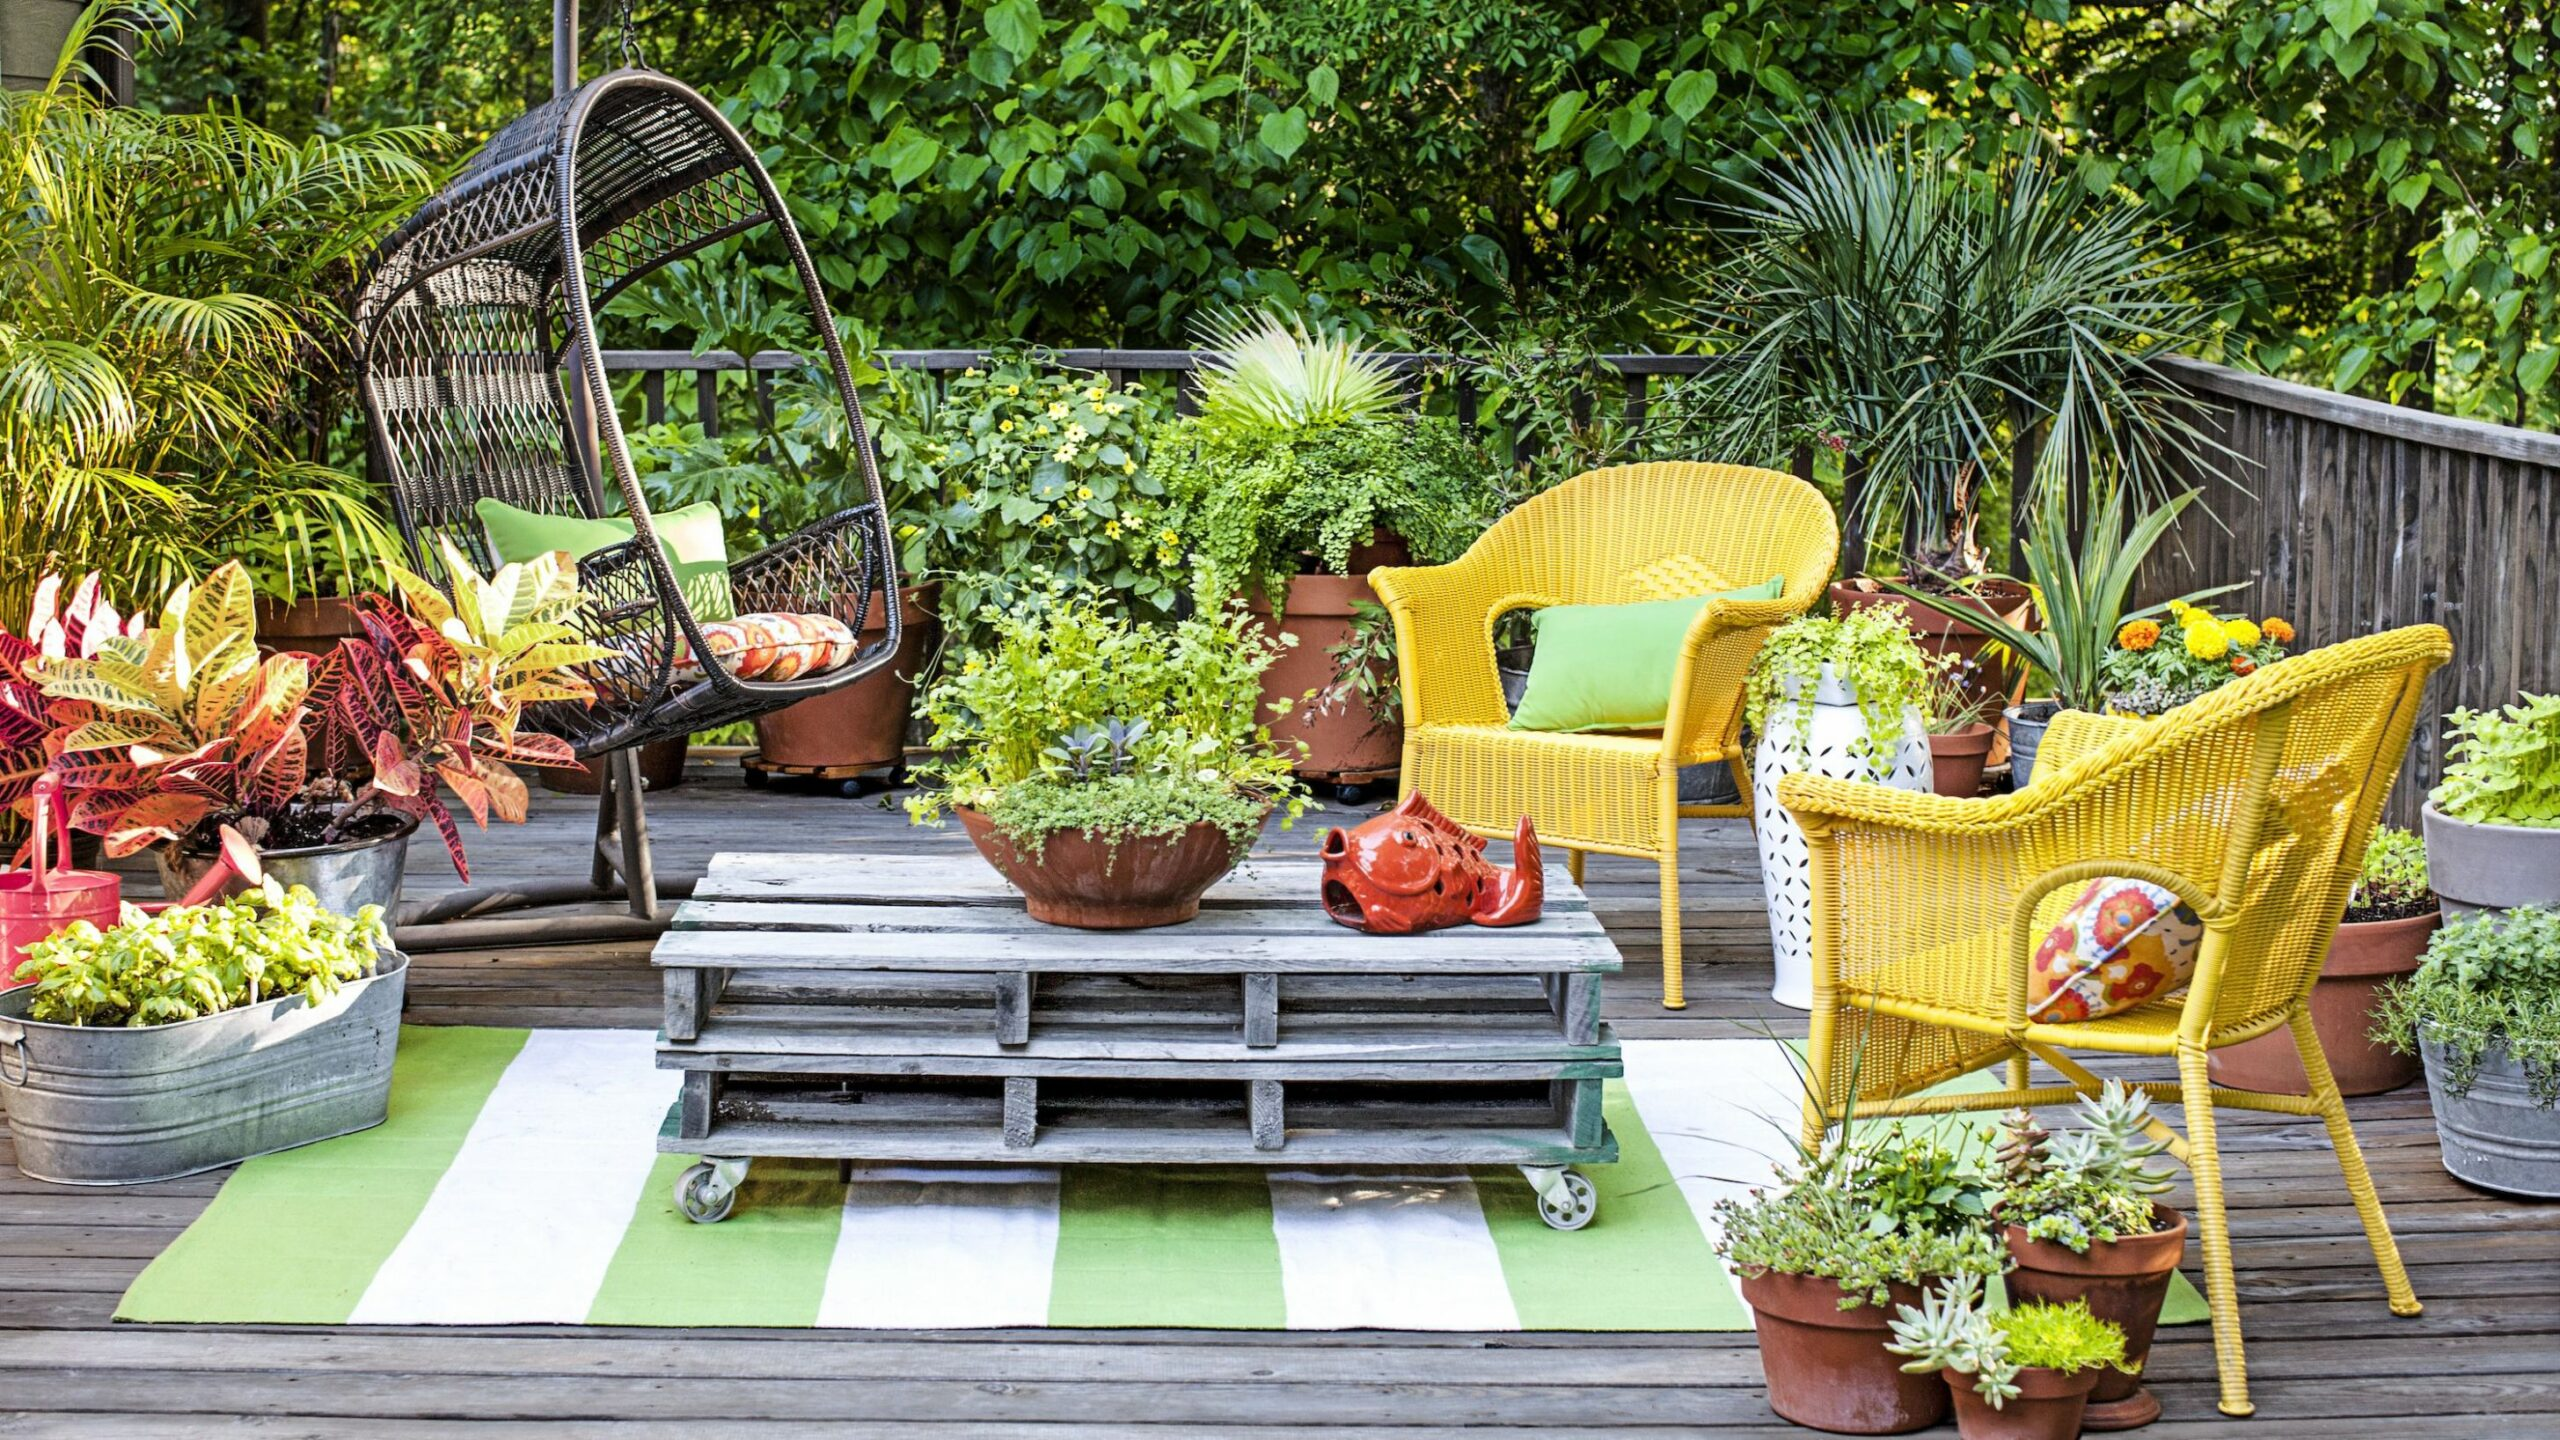 8+ Small Garden Ideas - Small Garden Designs